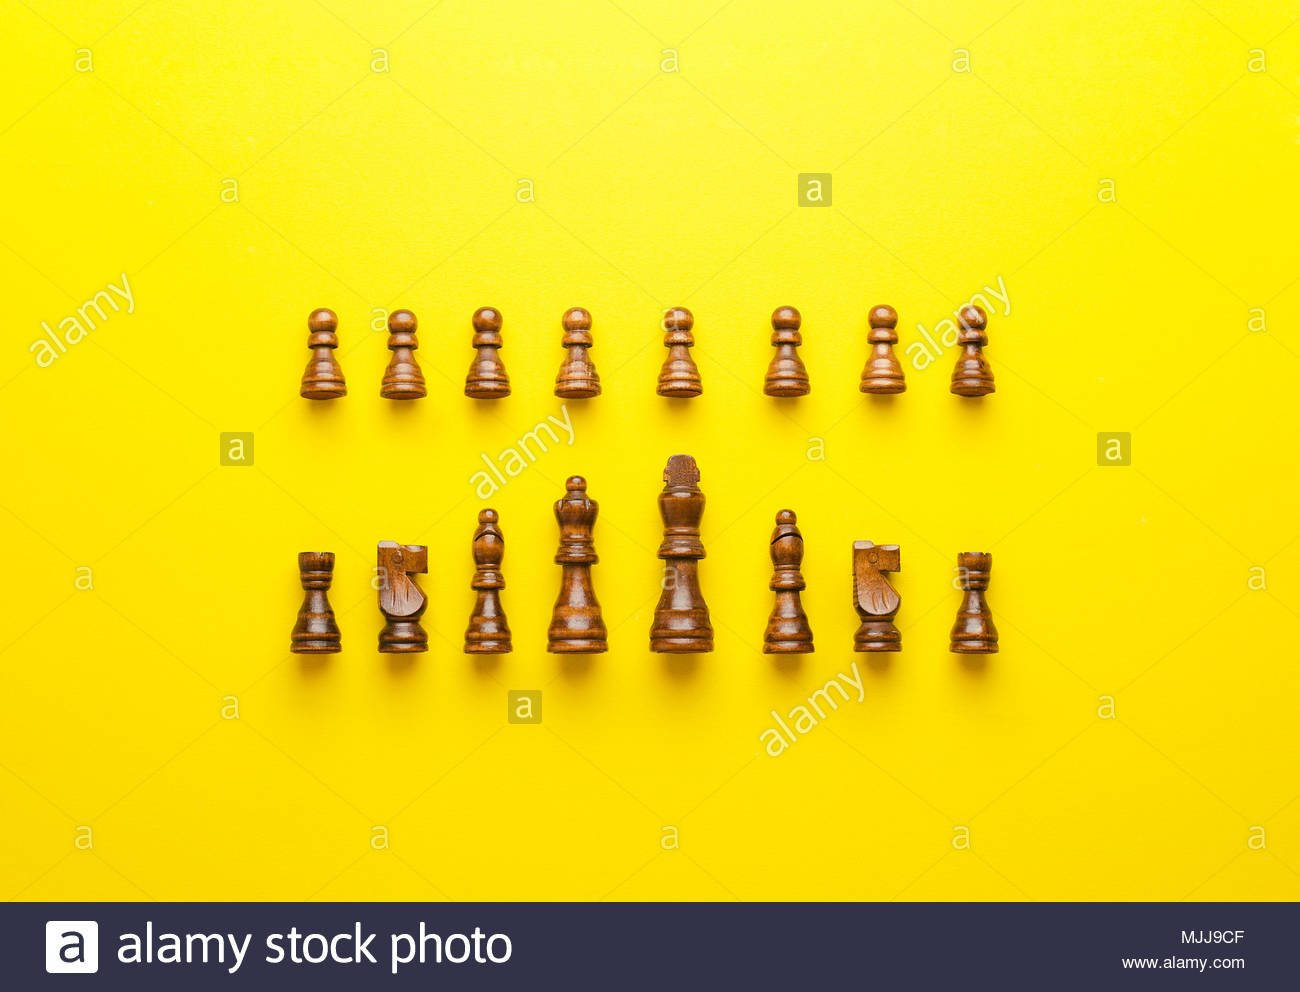 Wooden chess figurines organized in a row over yellow background 1300x992